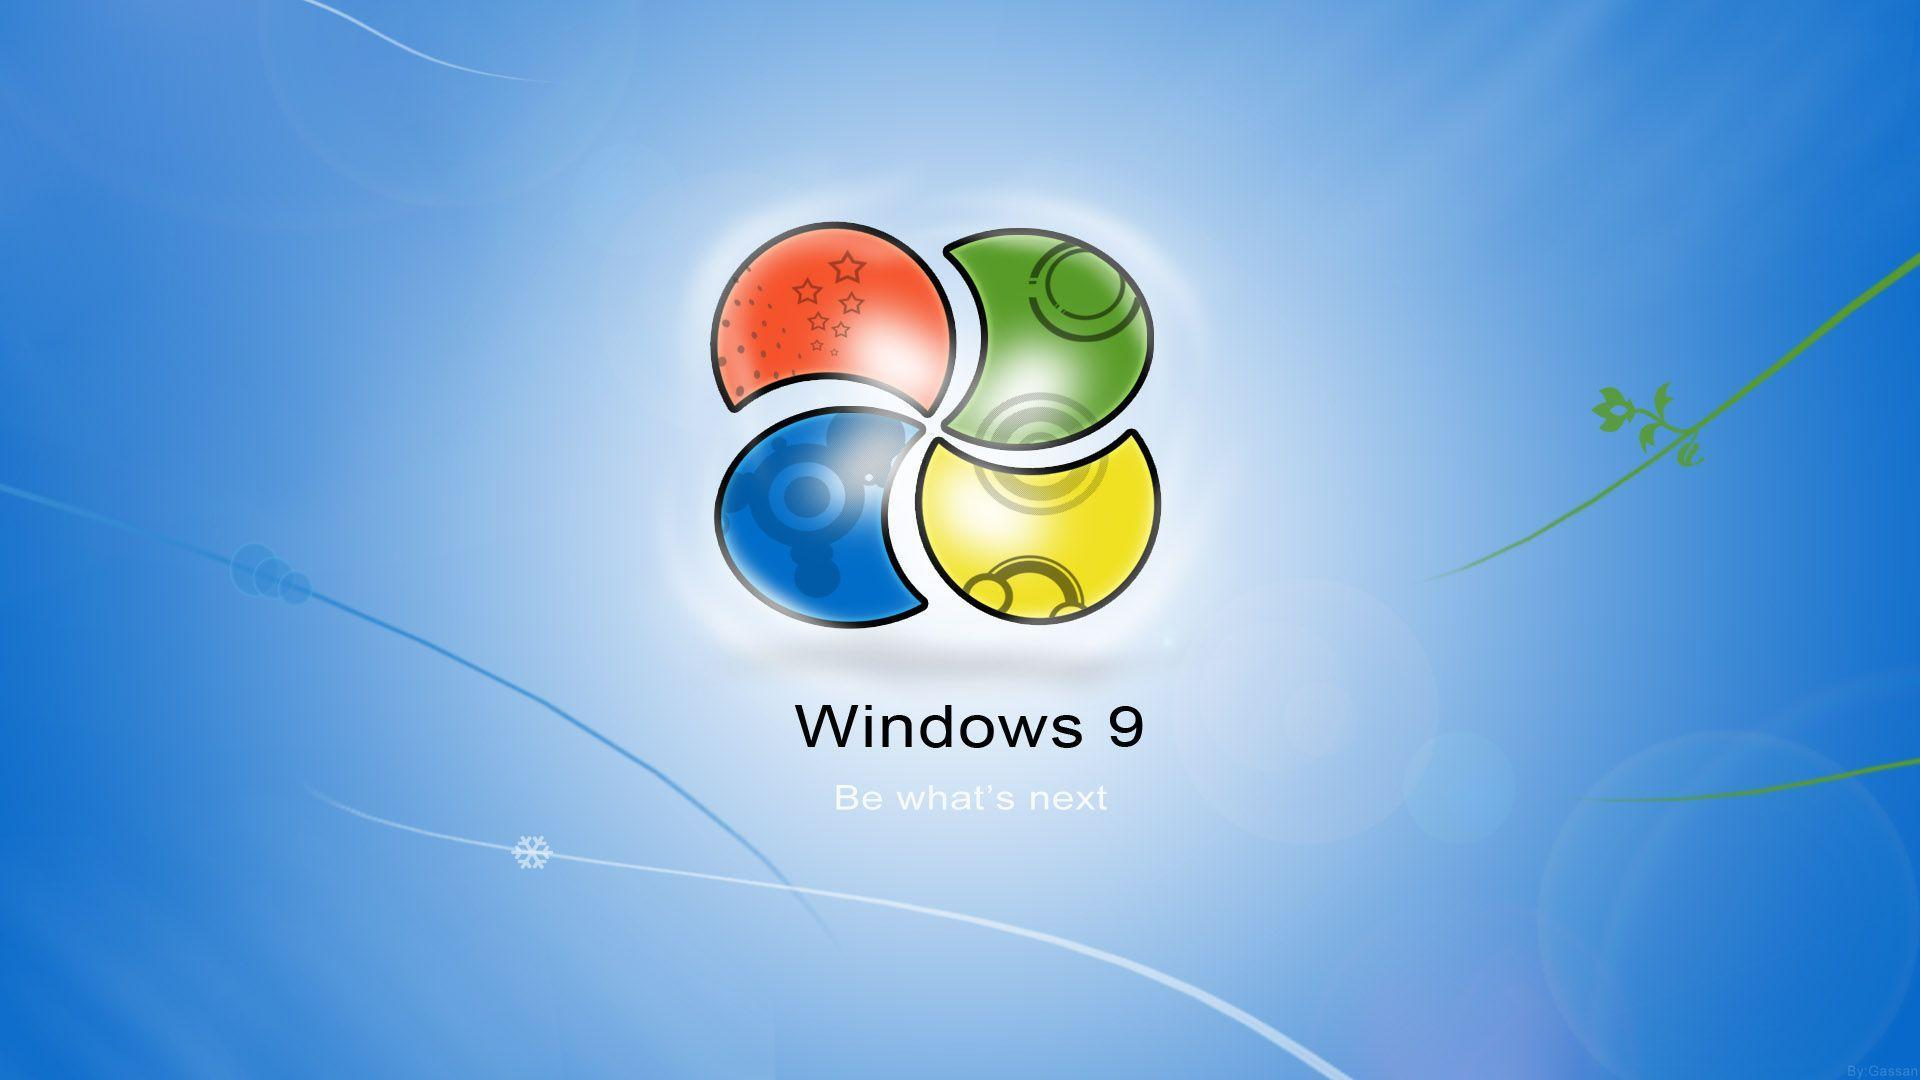 Animated Wallpapers Free Download For Xp Windows 9 Wallpapers Wallpaper Cave